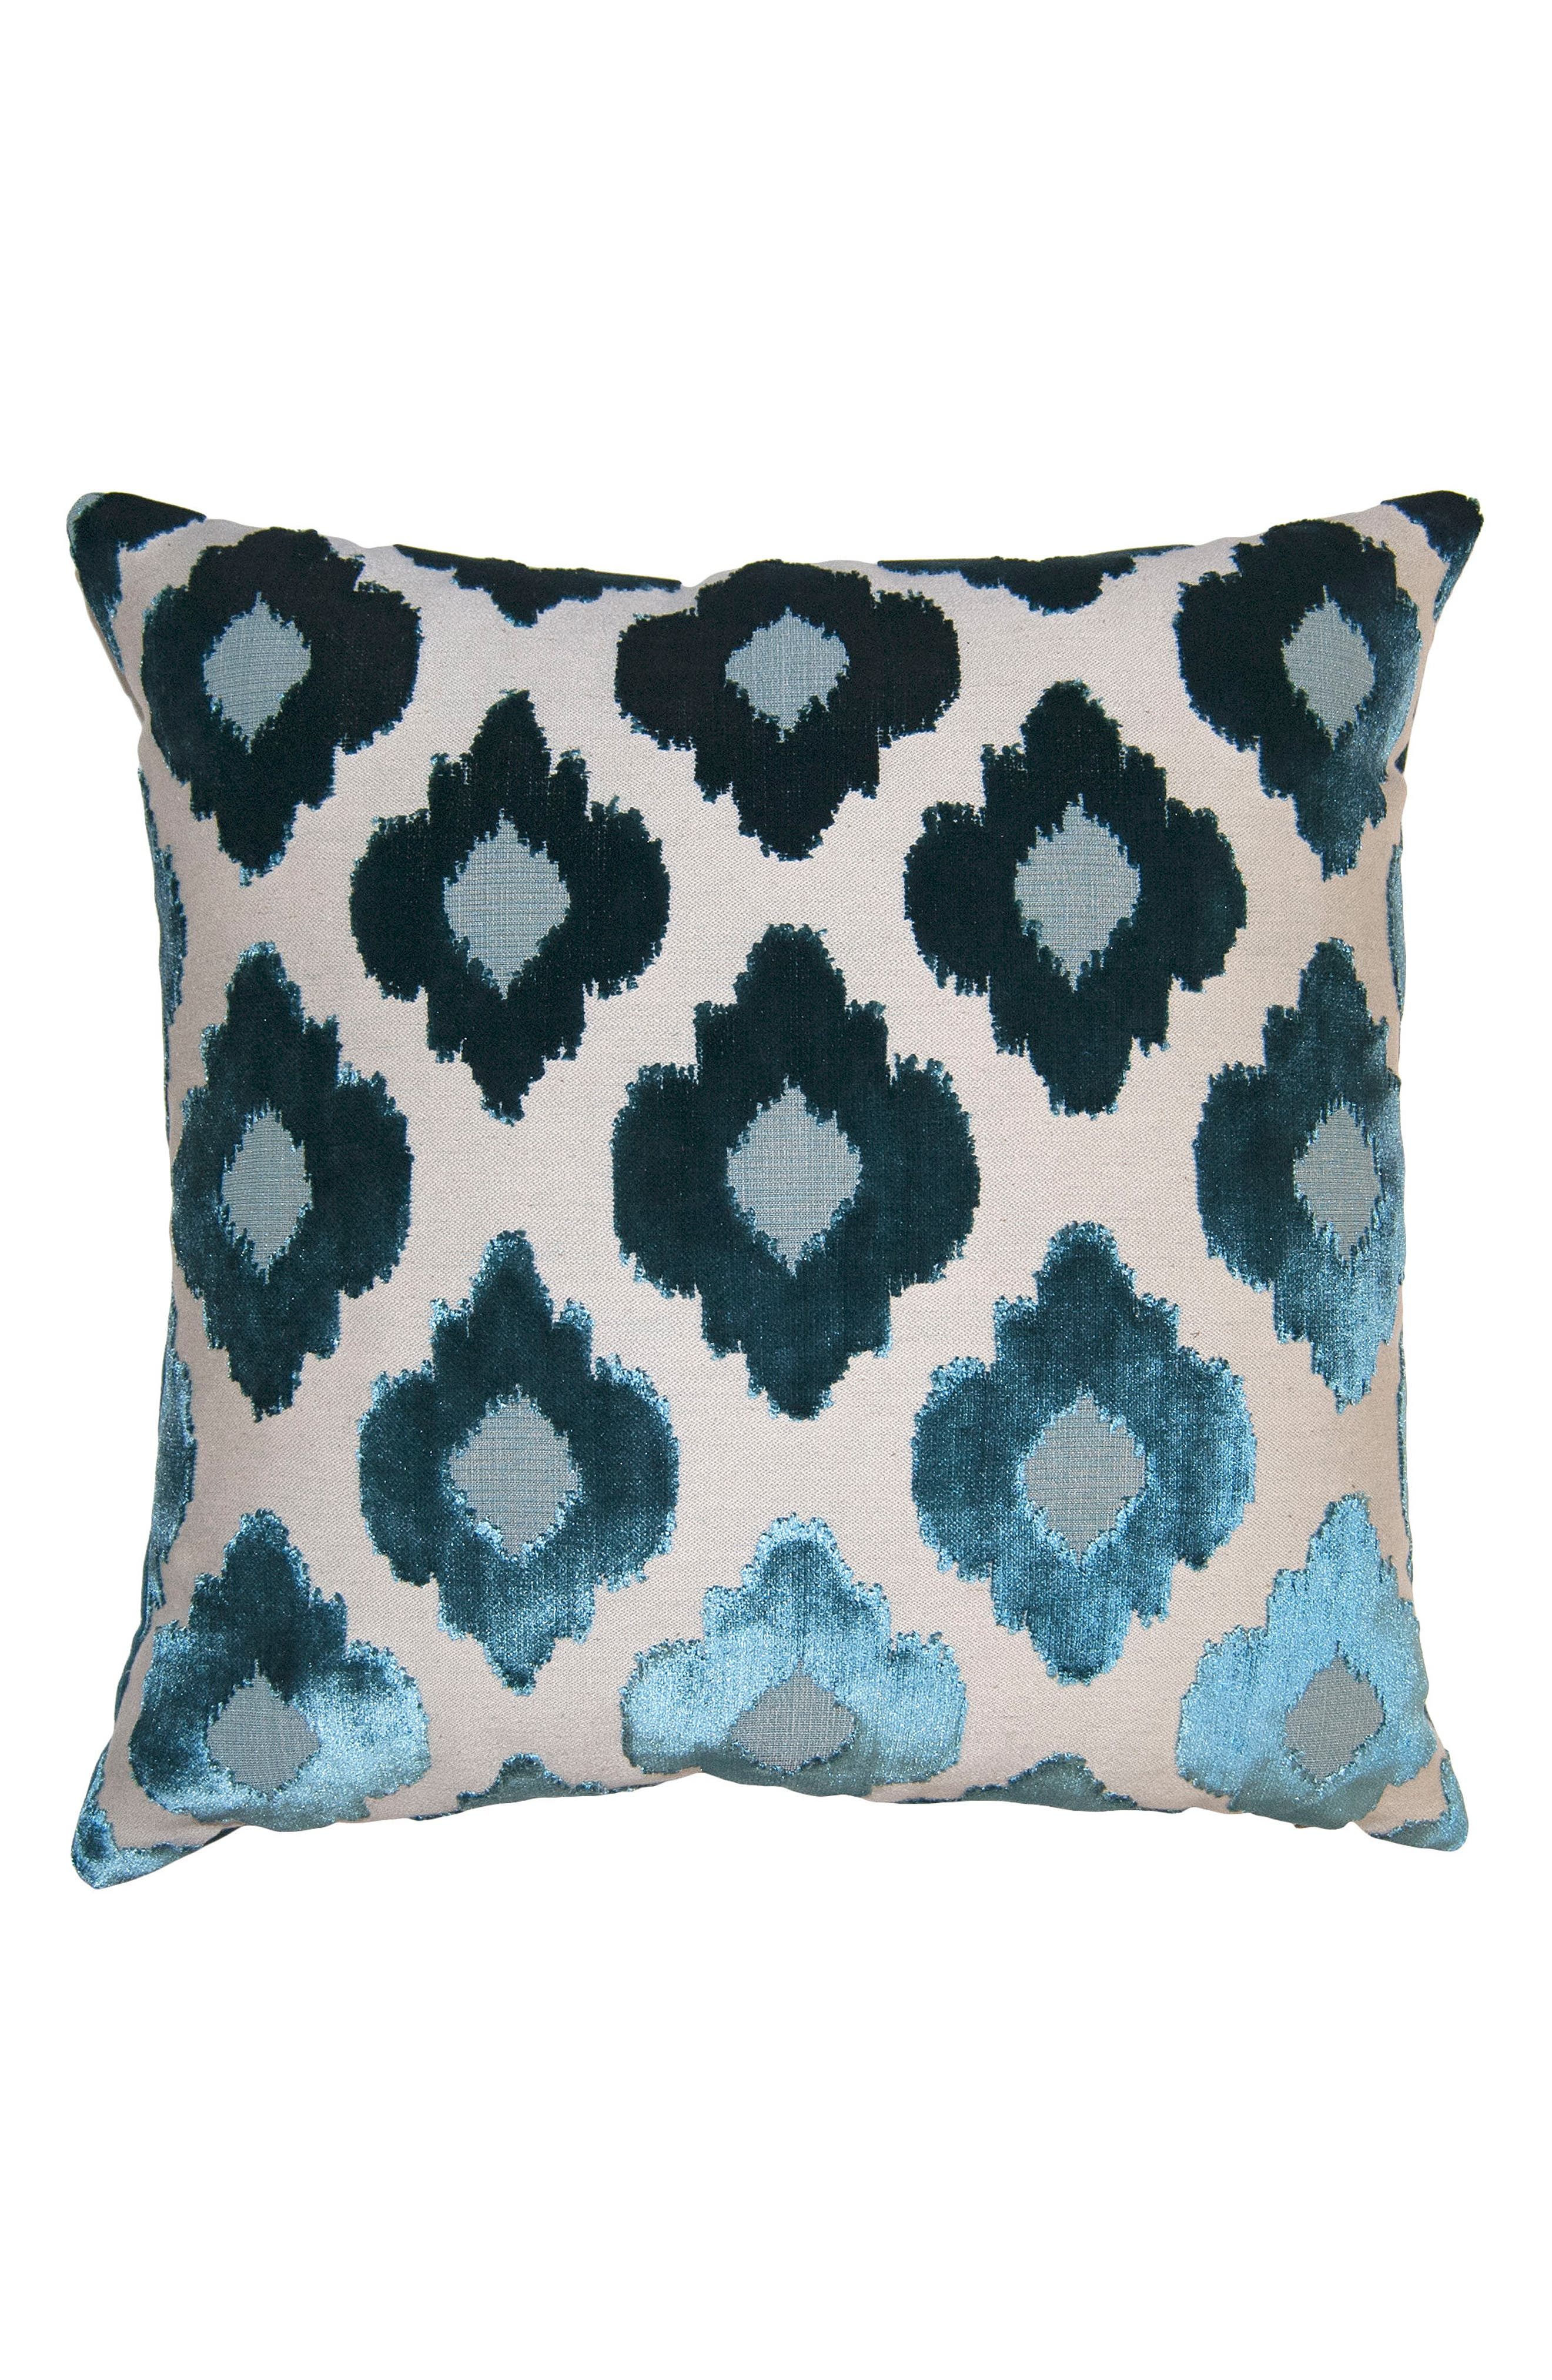 SQUARE FEATHERS,                             Sky Flowers Accent Pillow,                             Main thumbnail 1, color,                             BLUE